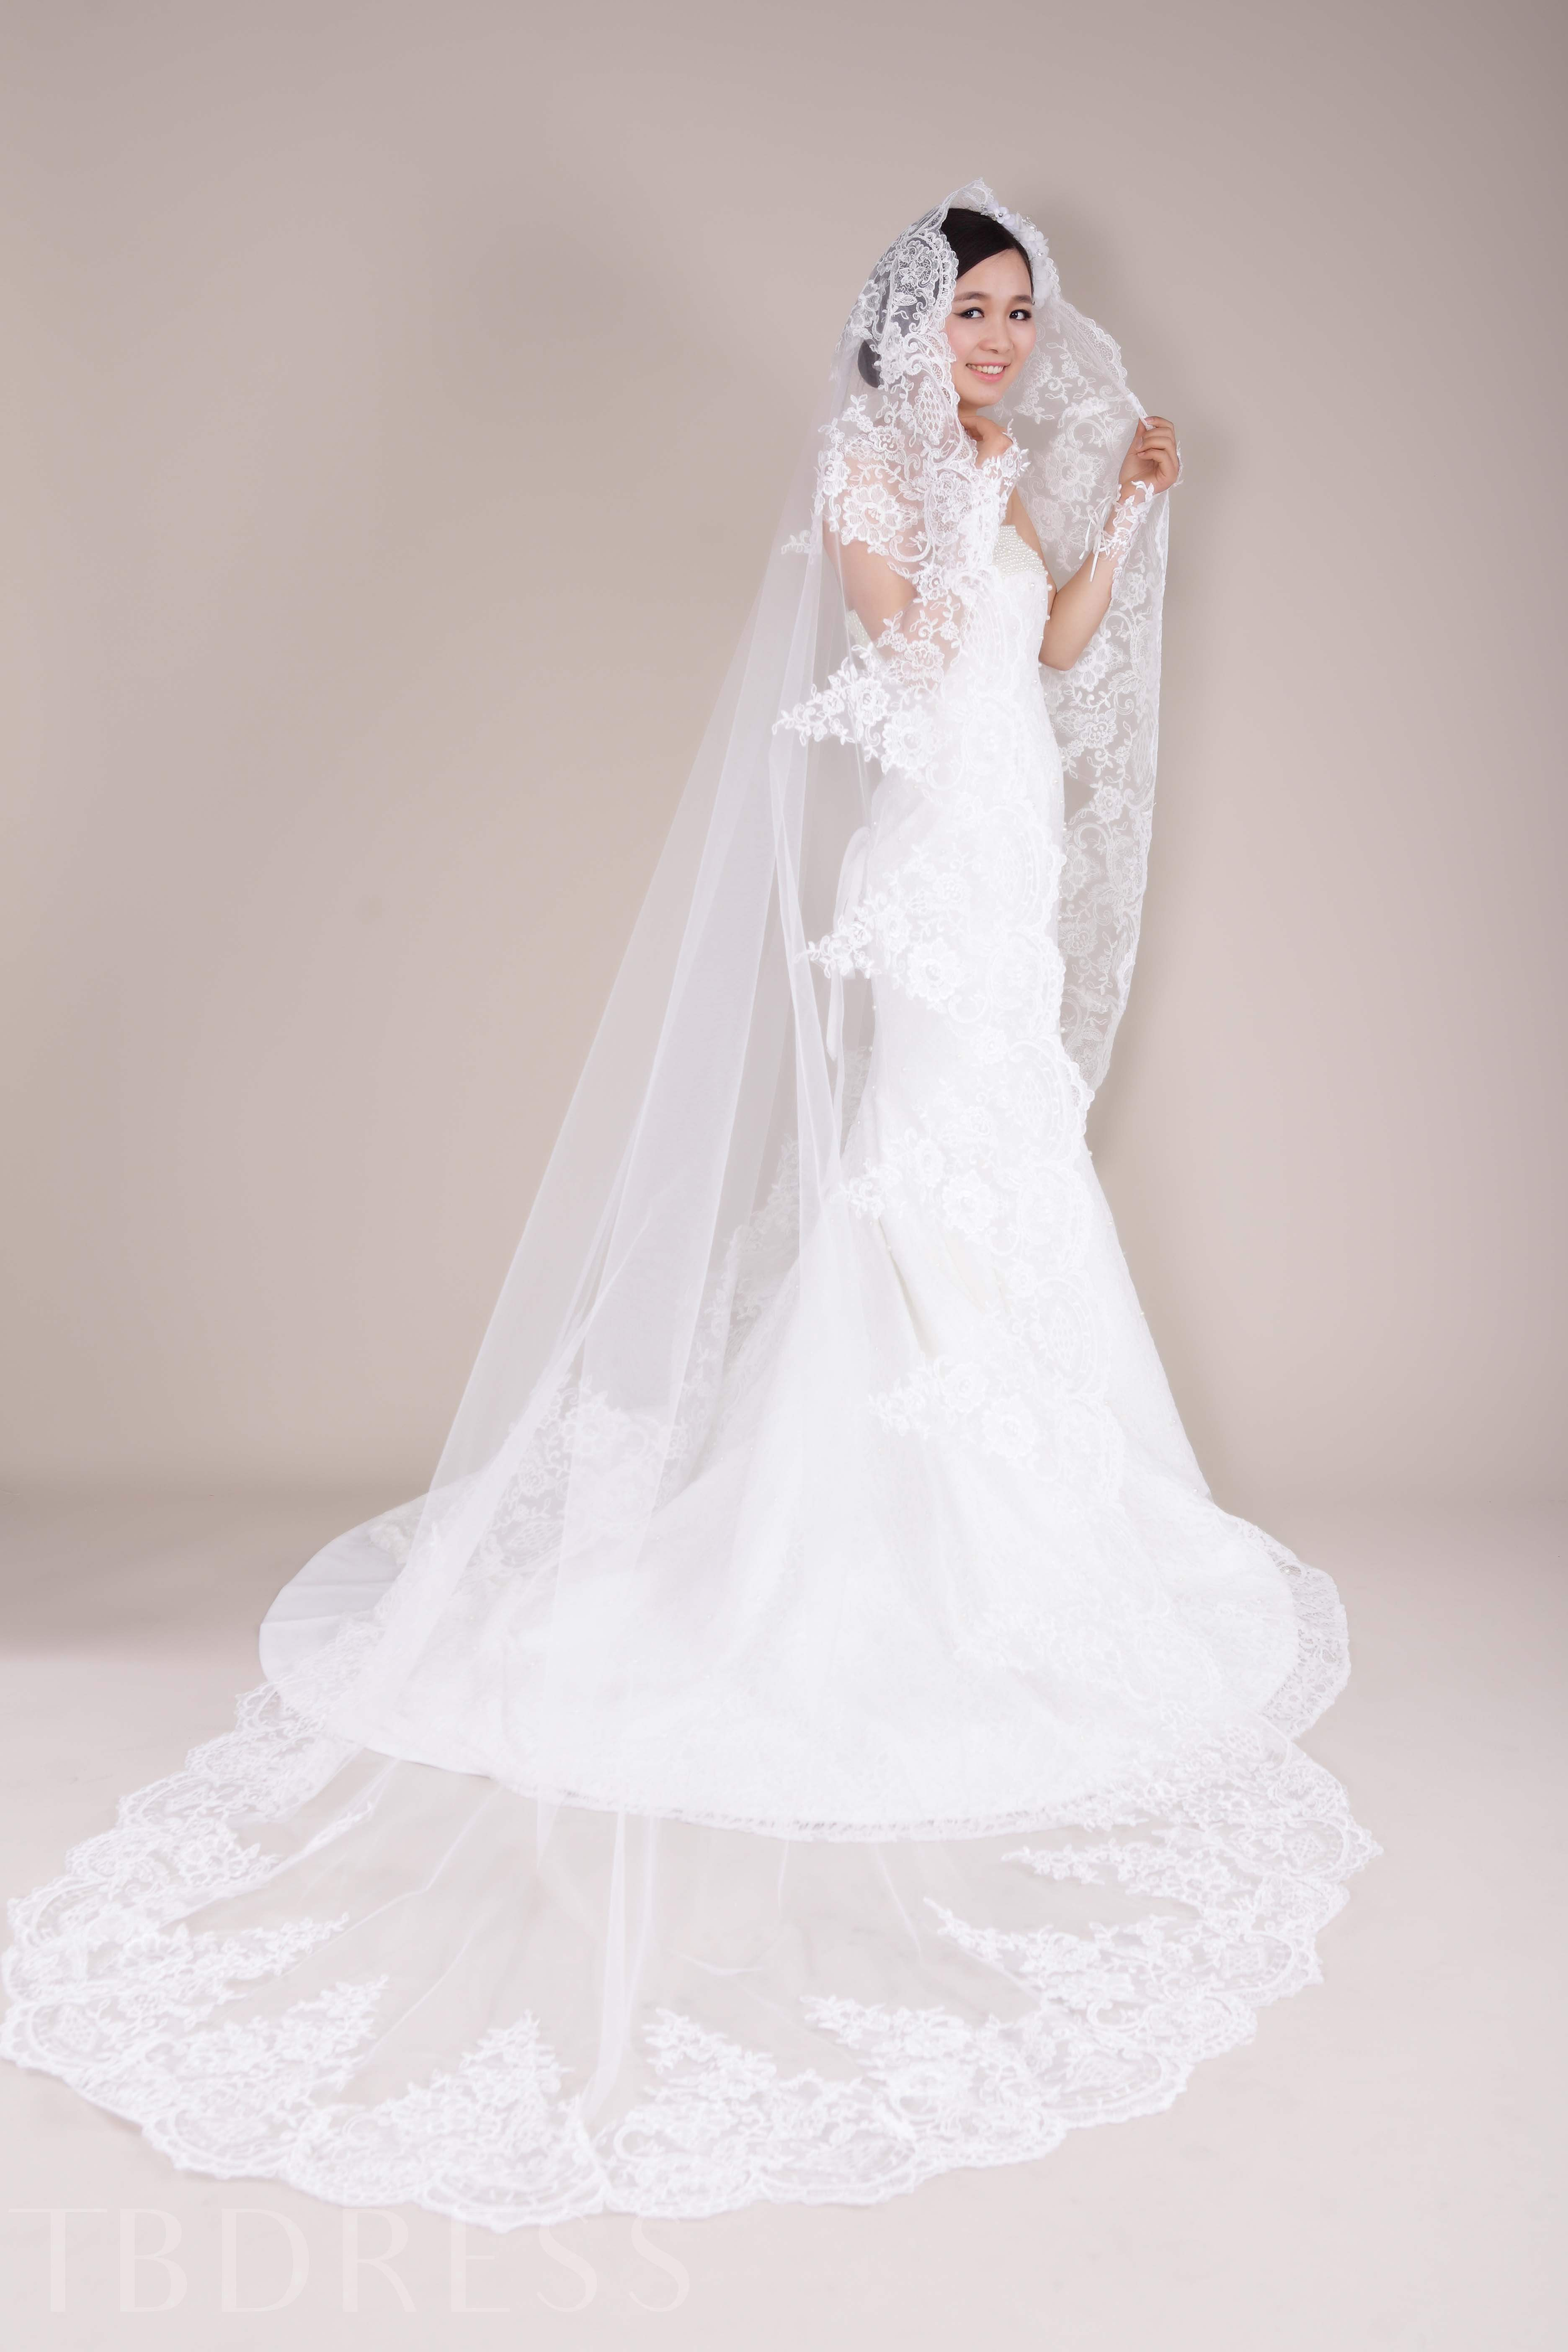 Tull Cathedral Wedding Bridal Veil with Applique